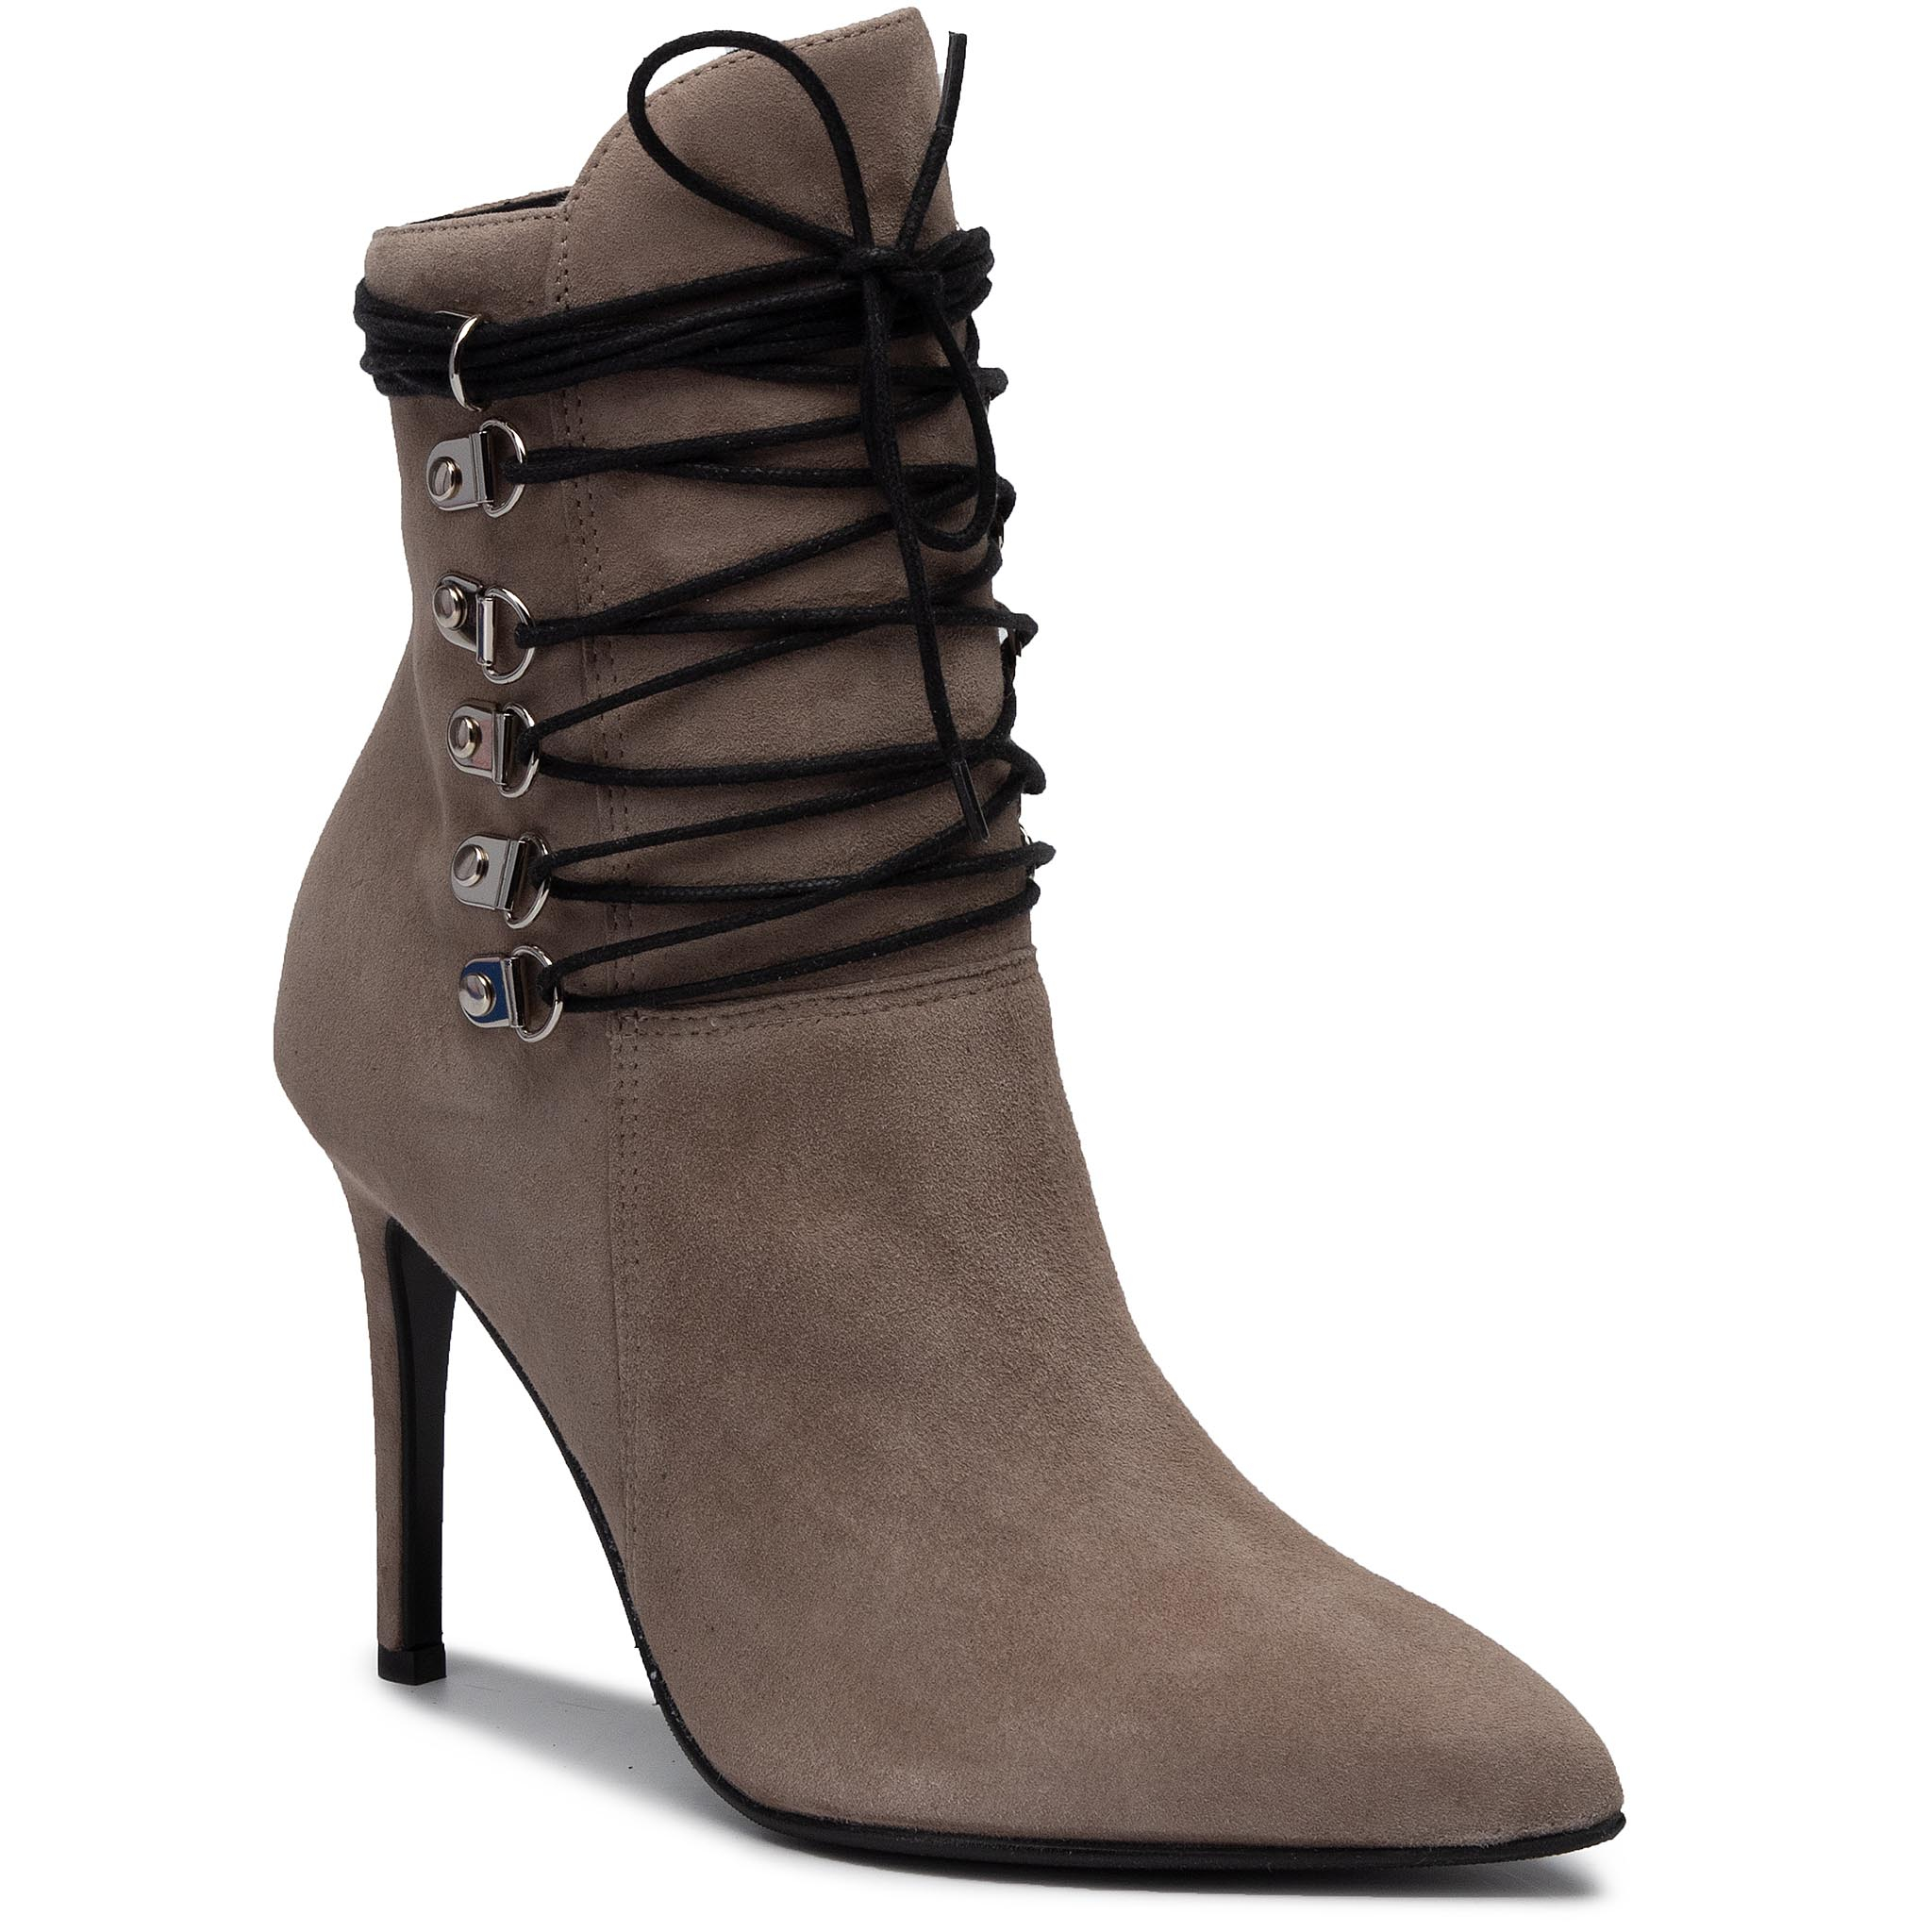 Botine SOLO FEMME - 14158-AB-K34/000-52-00 Taupe